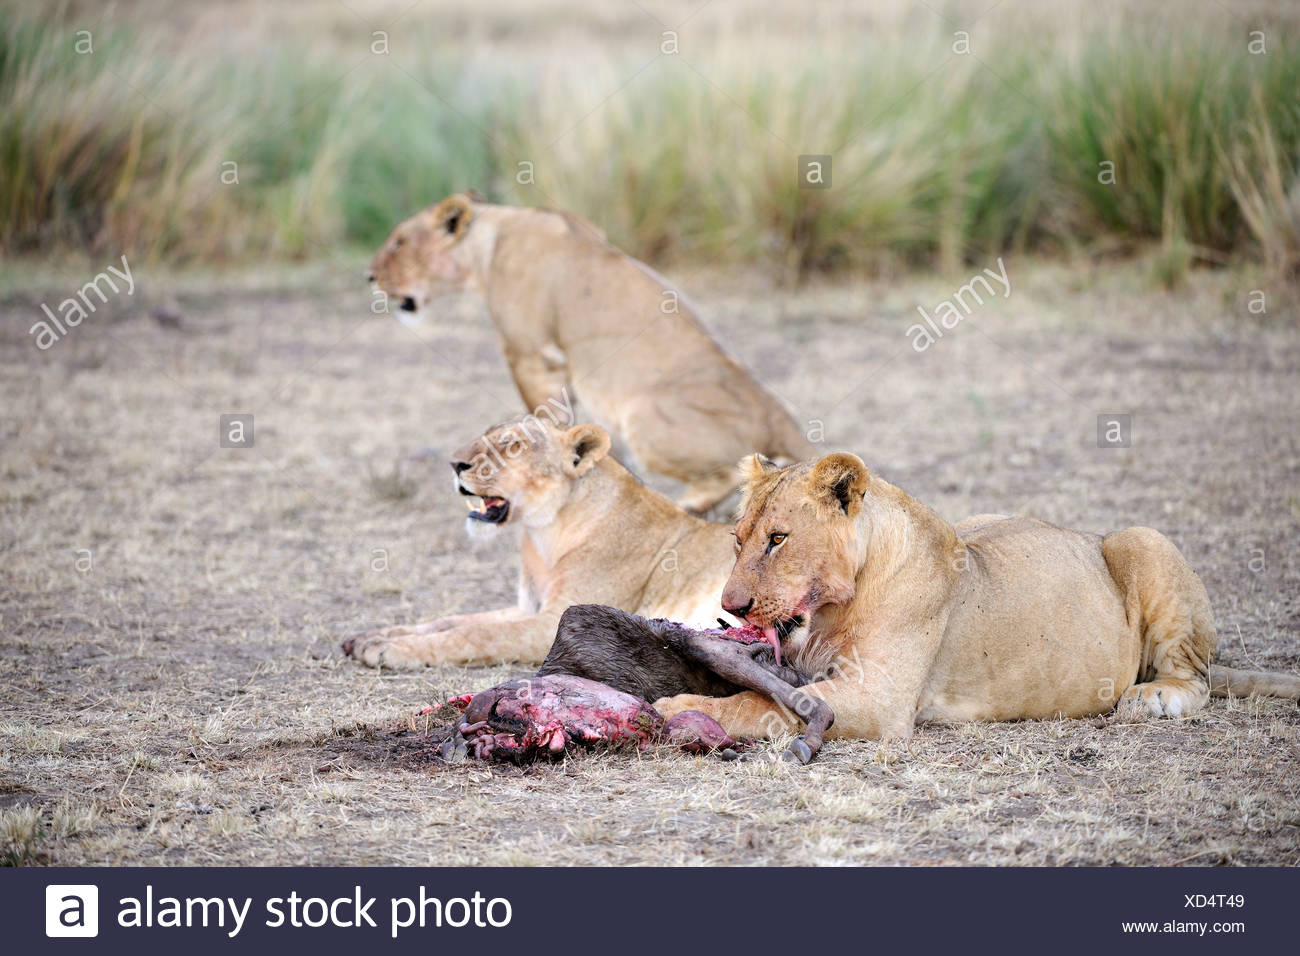 Lions (Panthera leo), lion family eating a captured wildebeest, Masai Mara, Kenya, East Africa, Africa Stock Photo